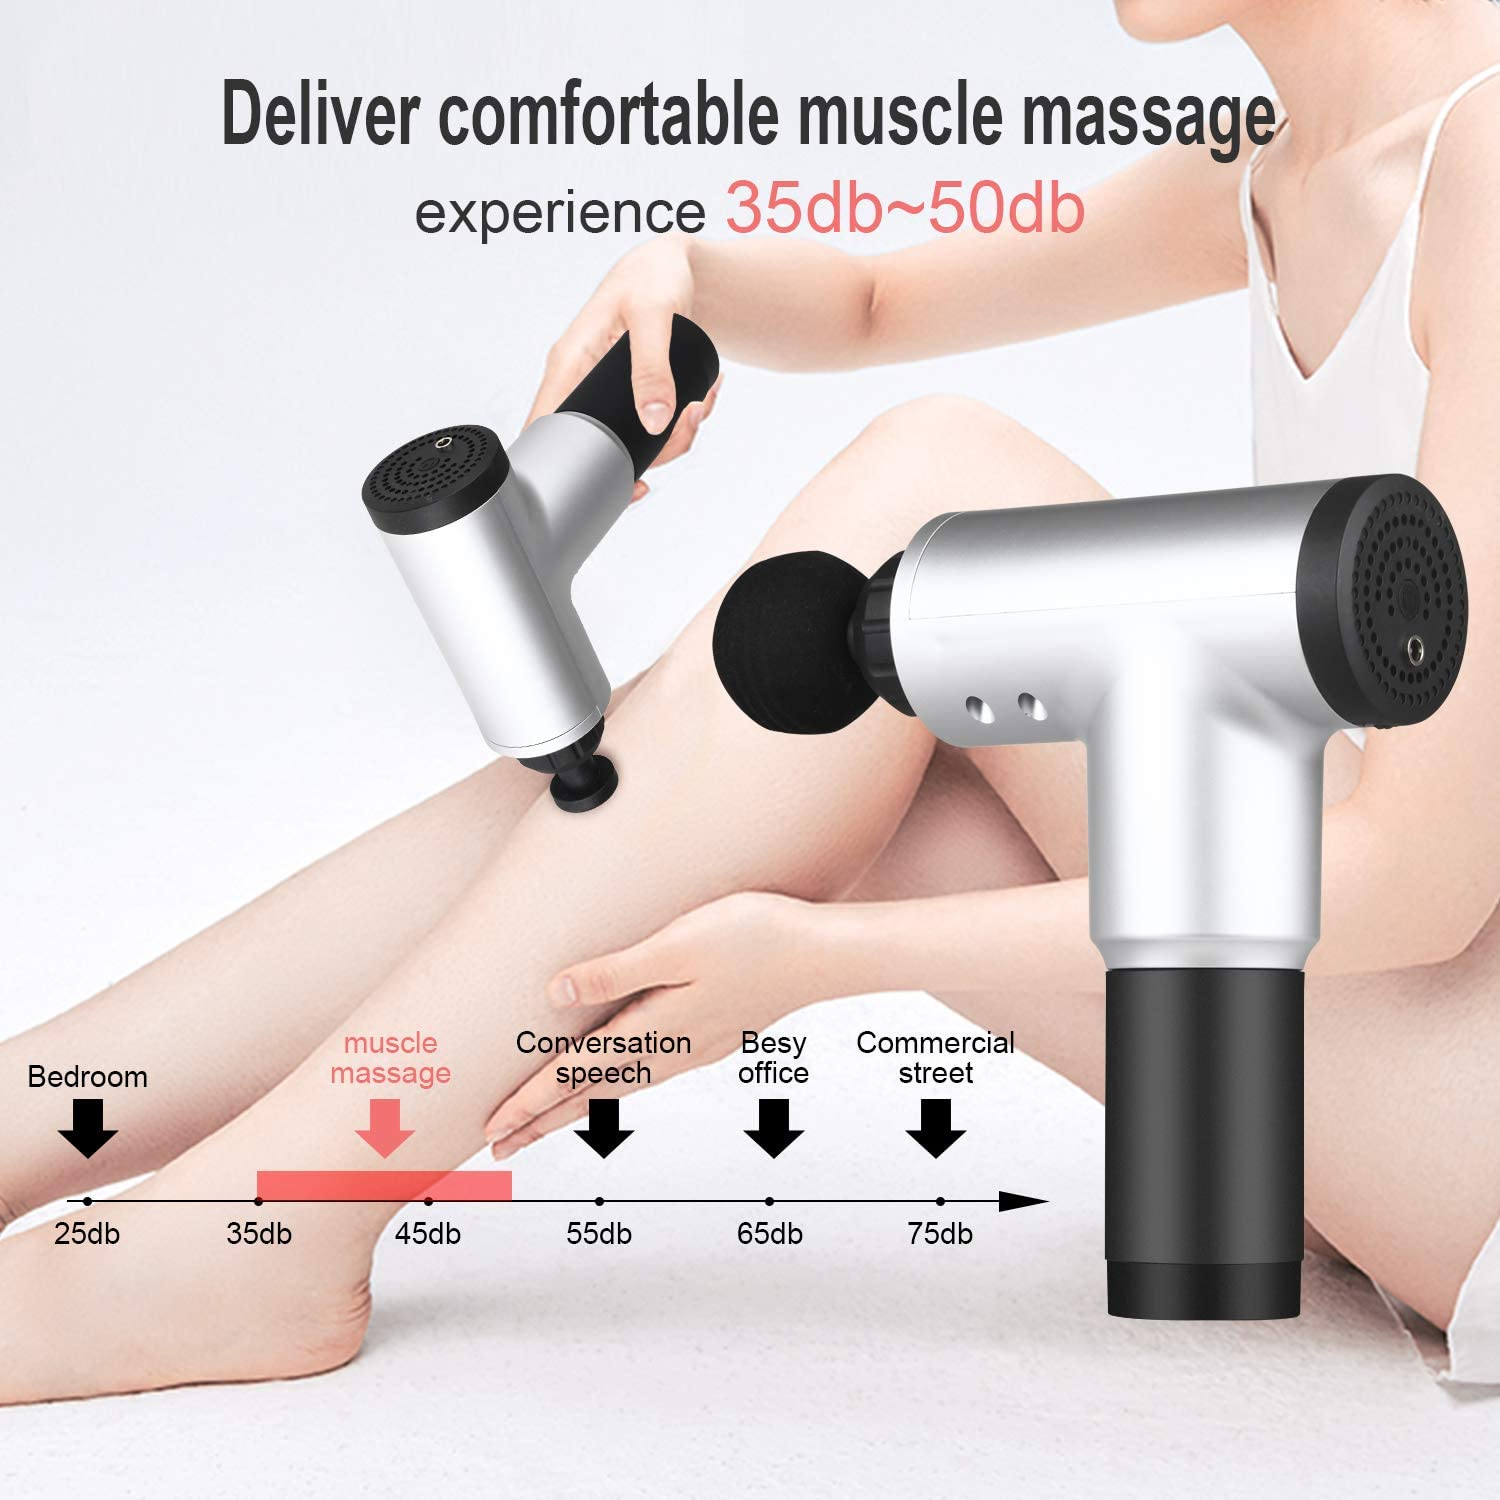 50%off Cordless Deep Tissue Muscle Massage Gun